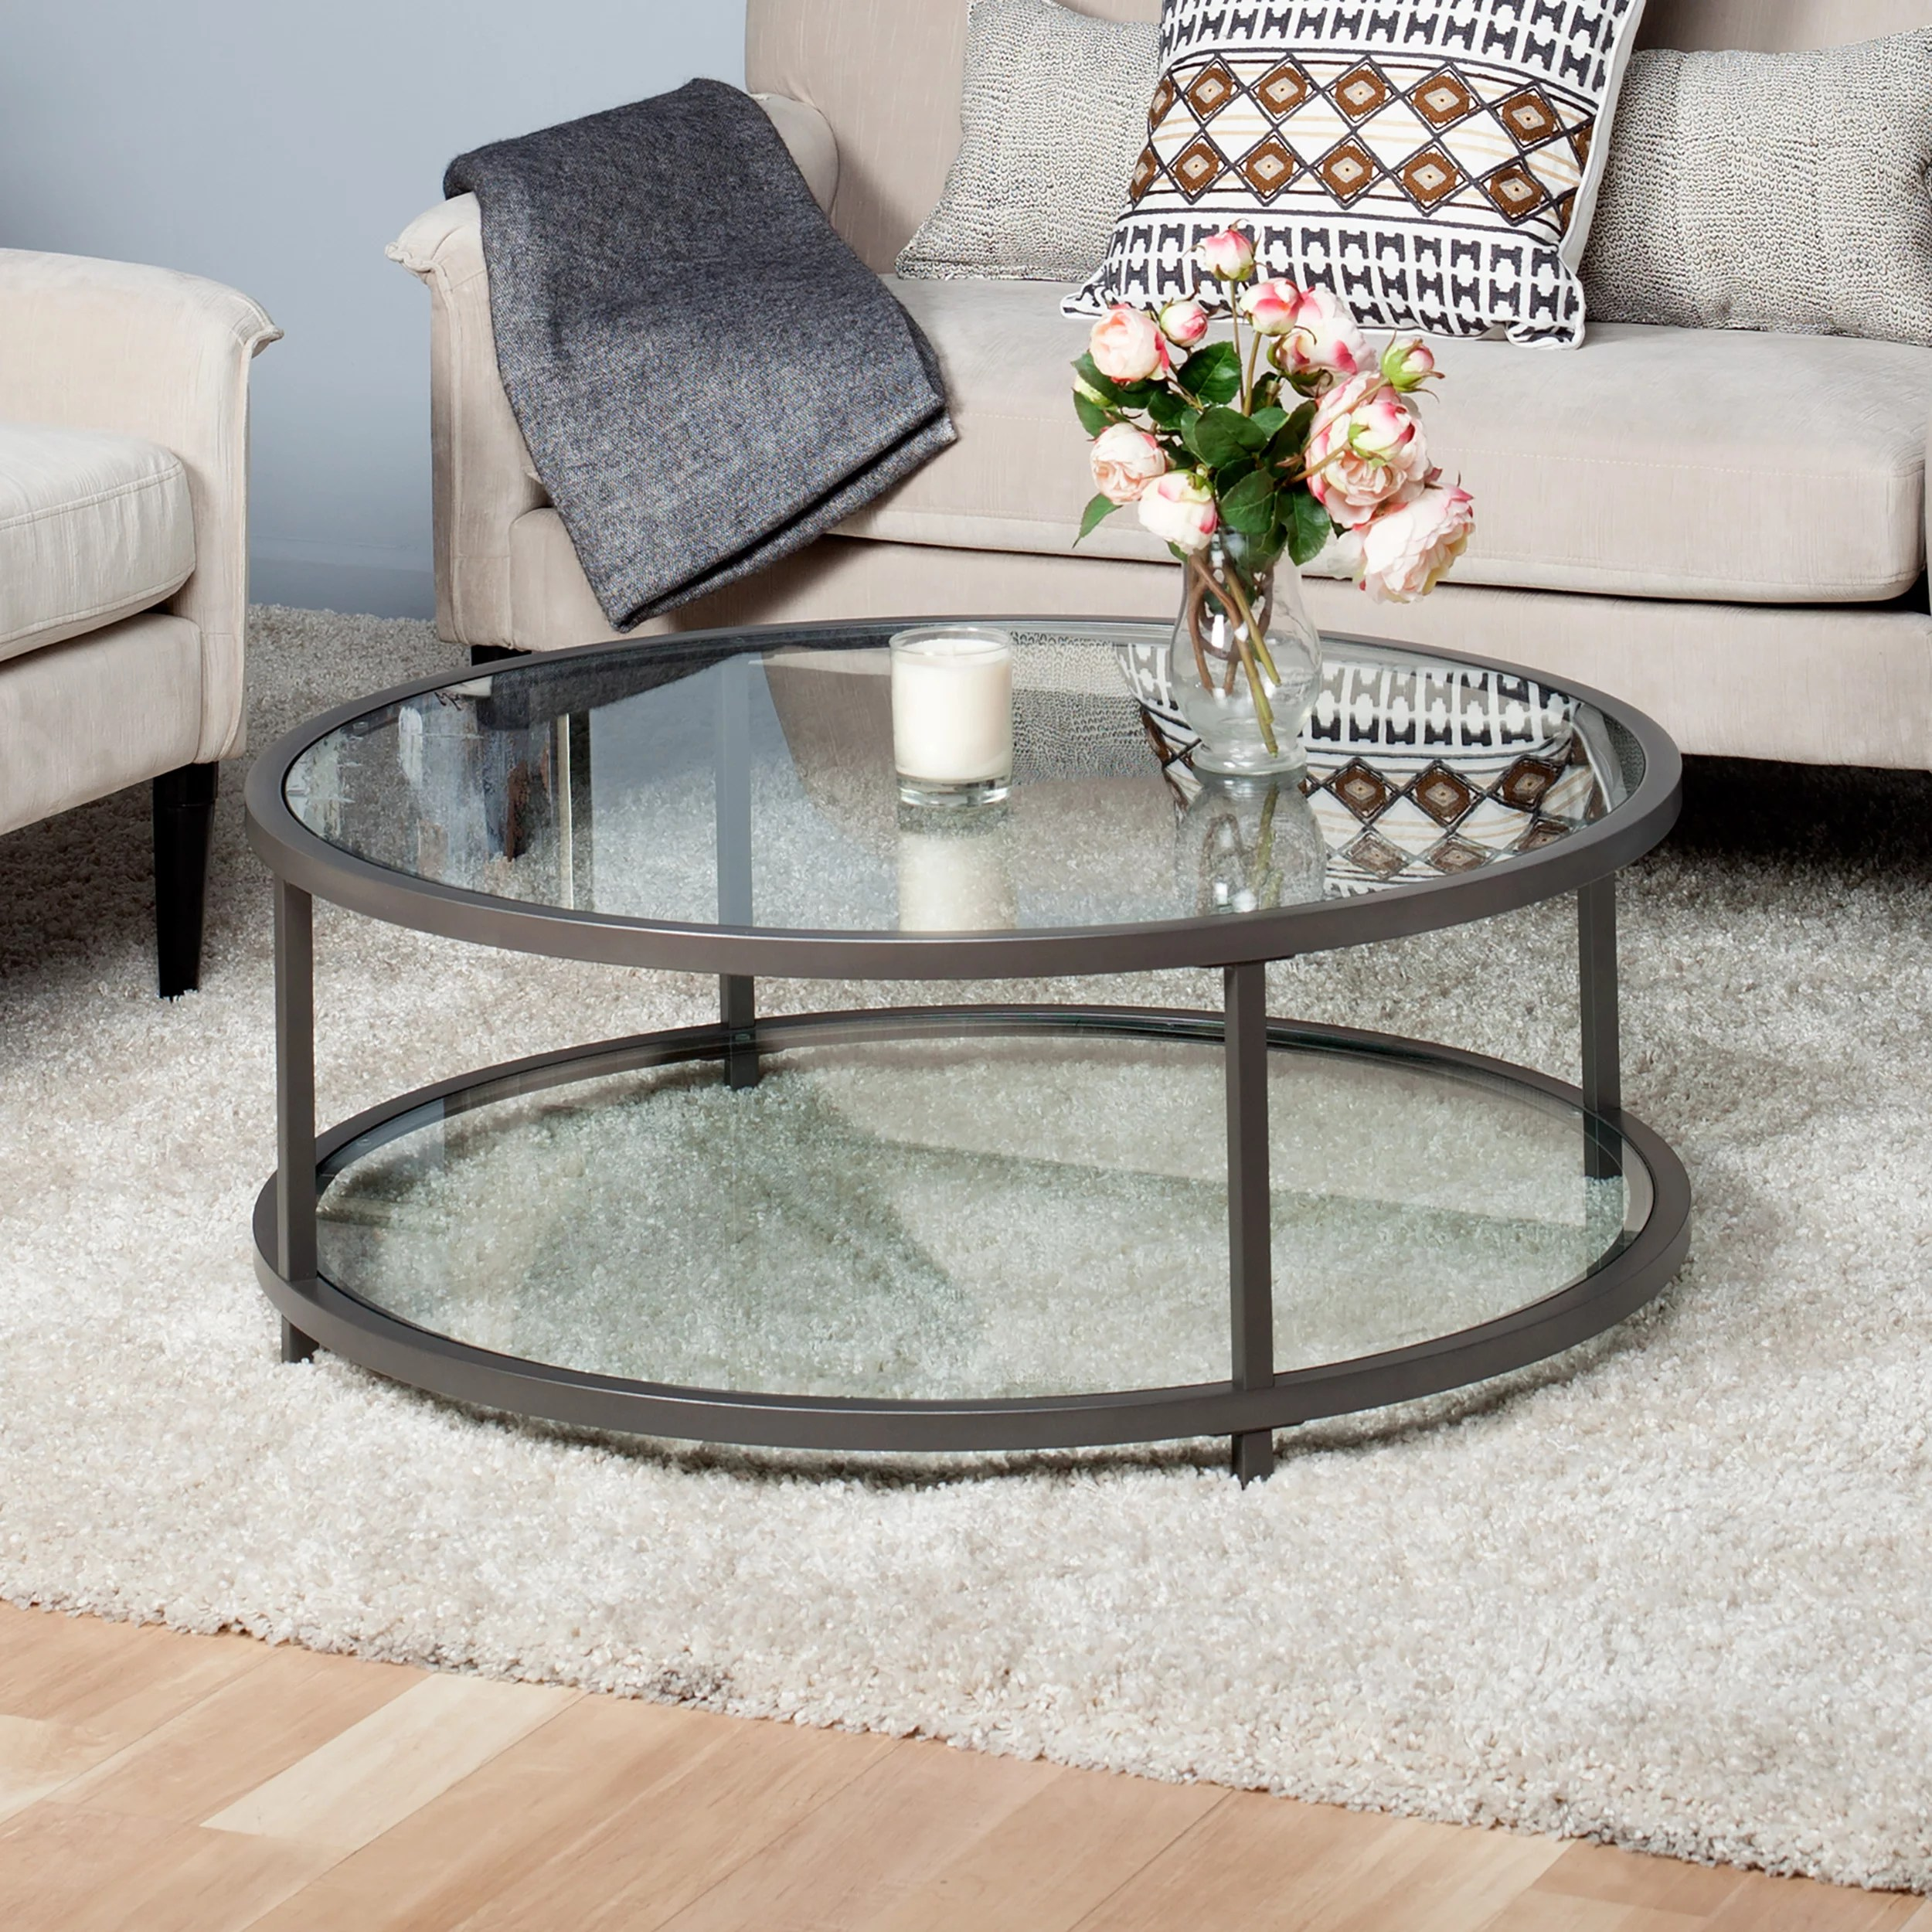 studio designs home camber 2 tier modern 38 round coffee table in pewter